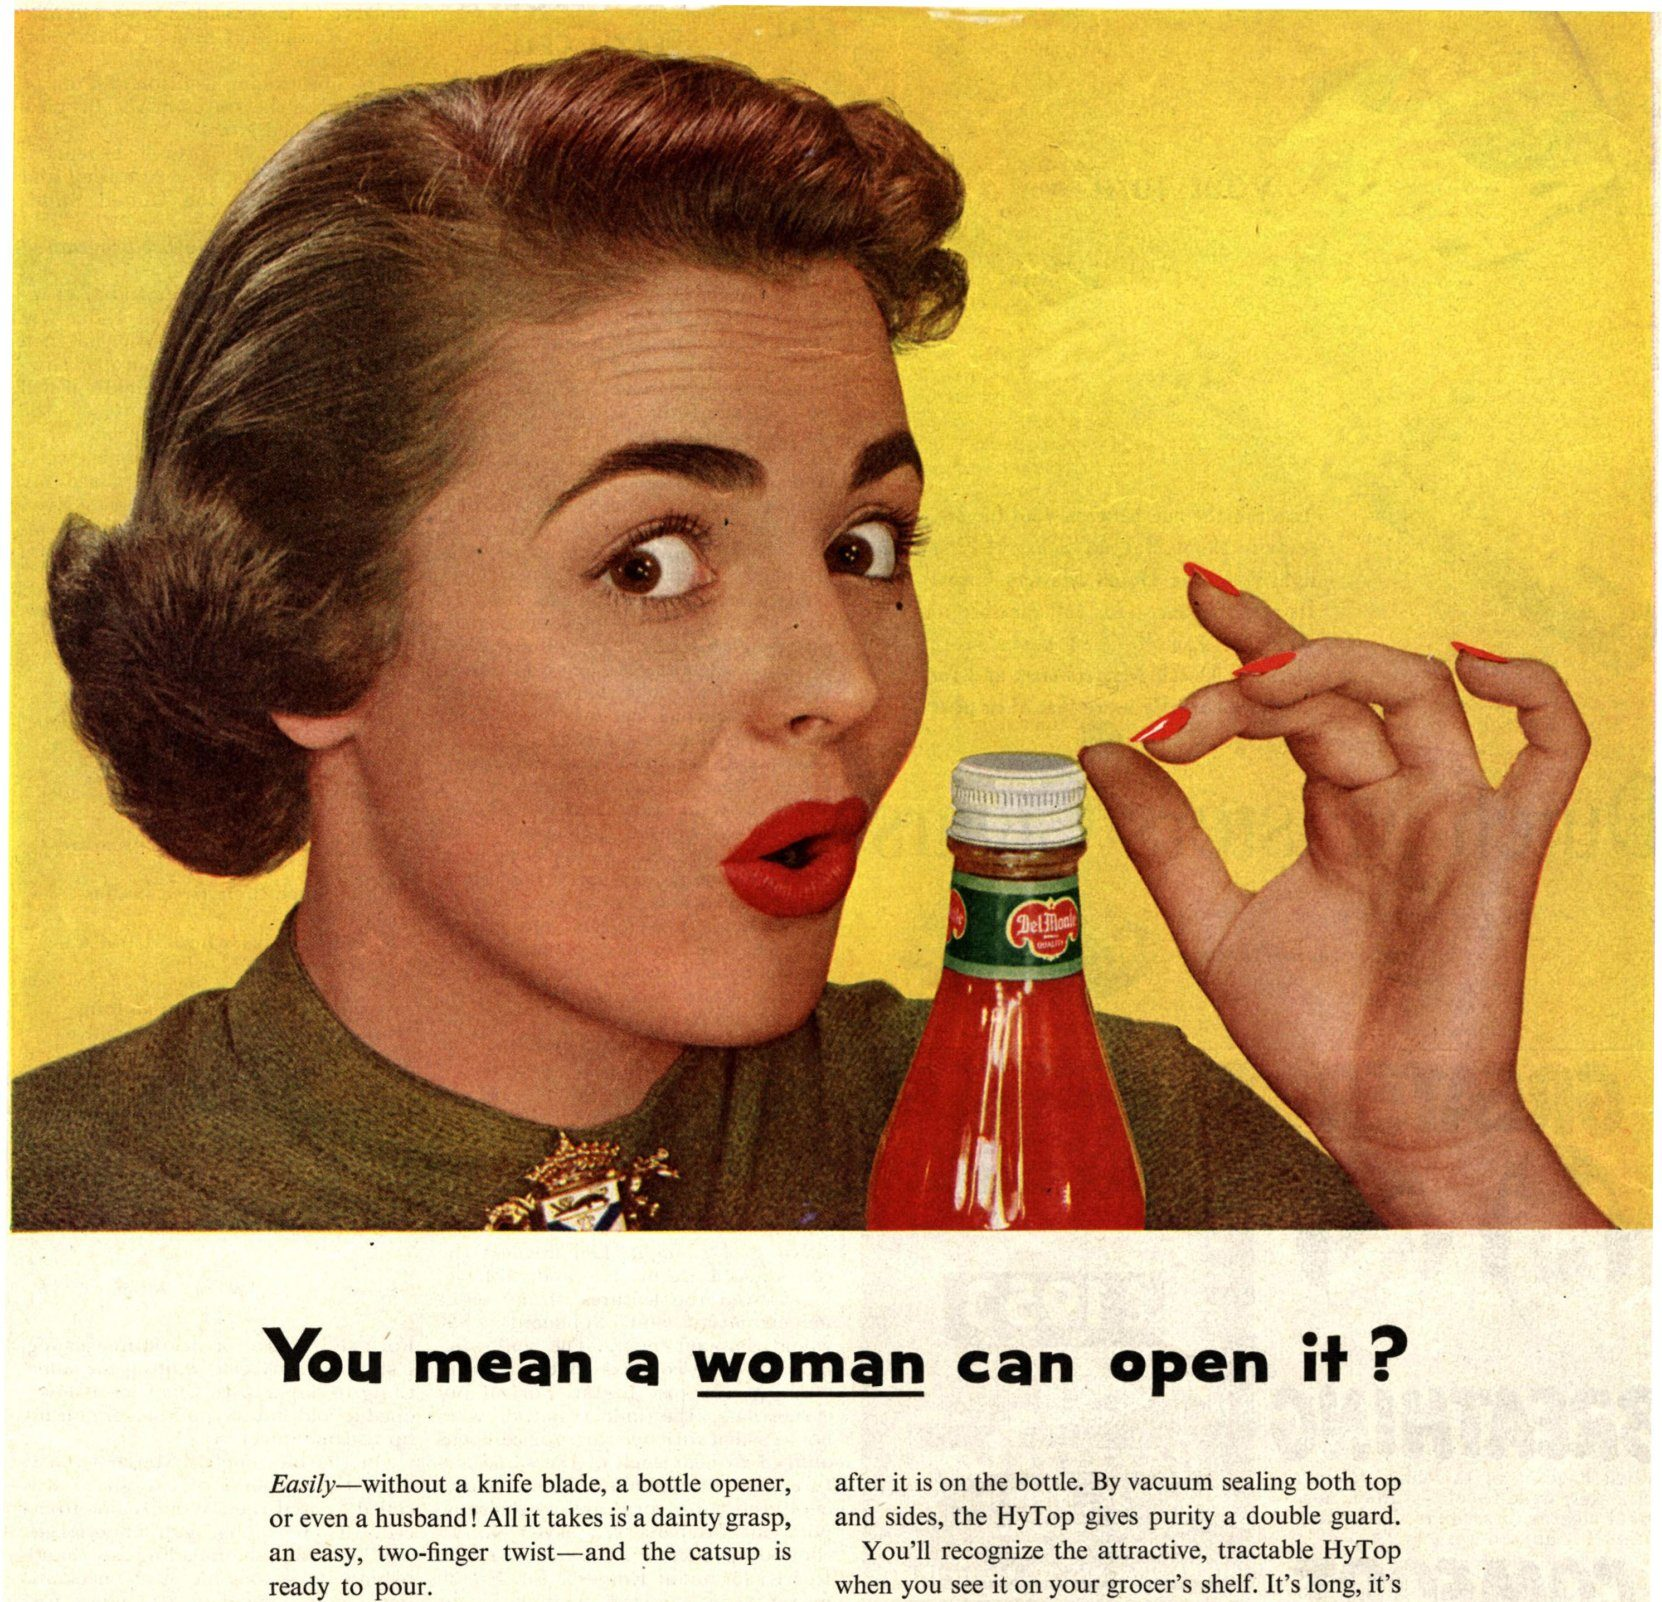 Vintage Adverts | You mean a woman can open it?